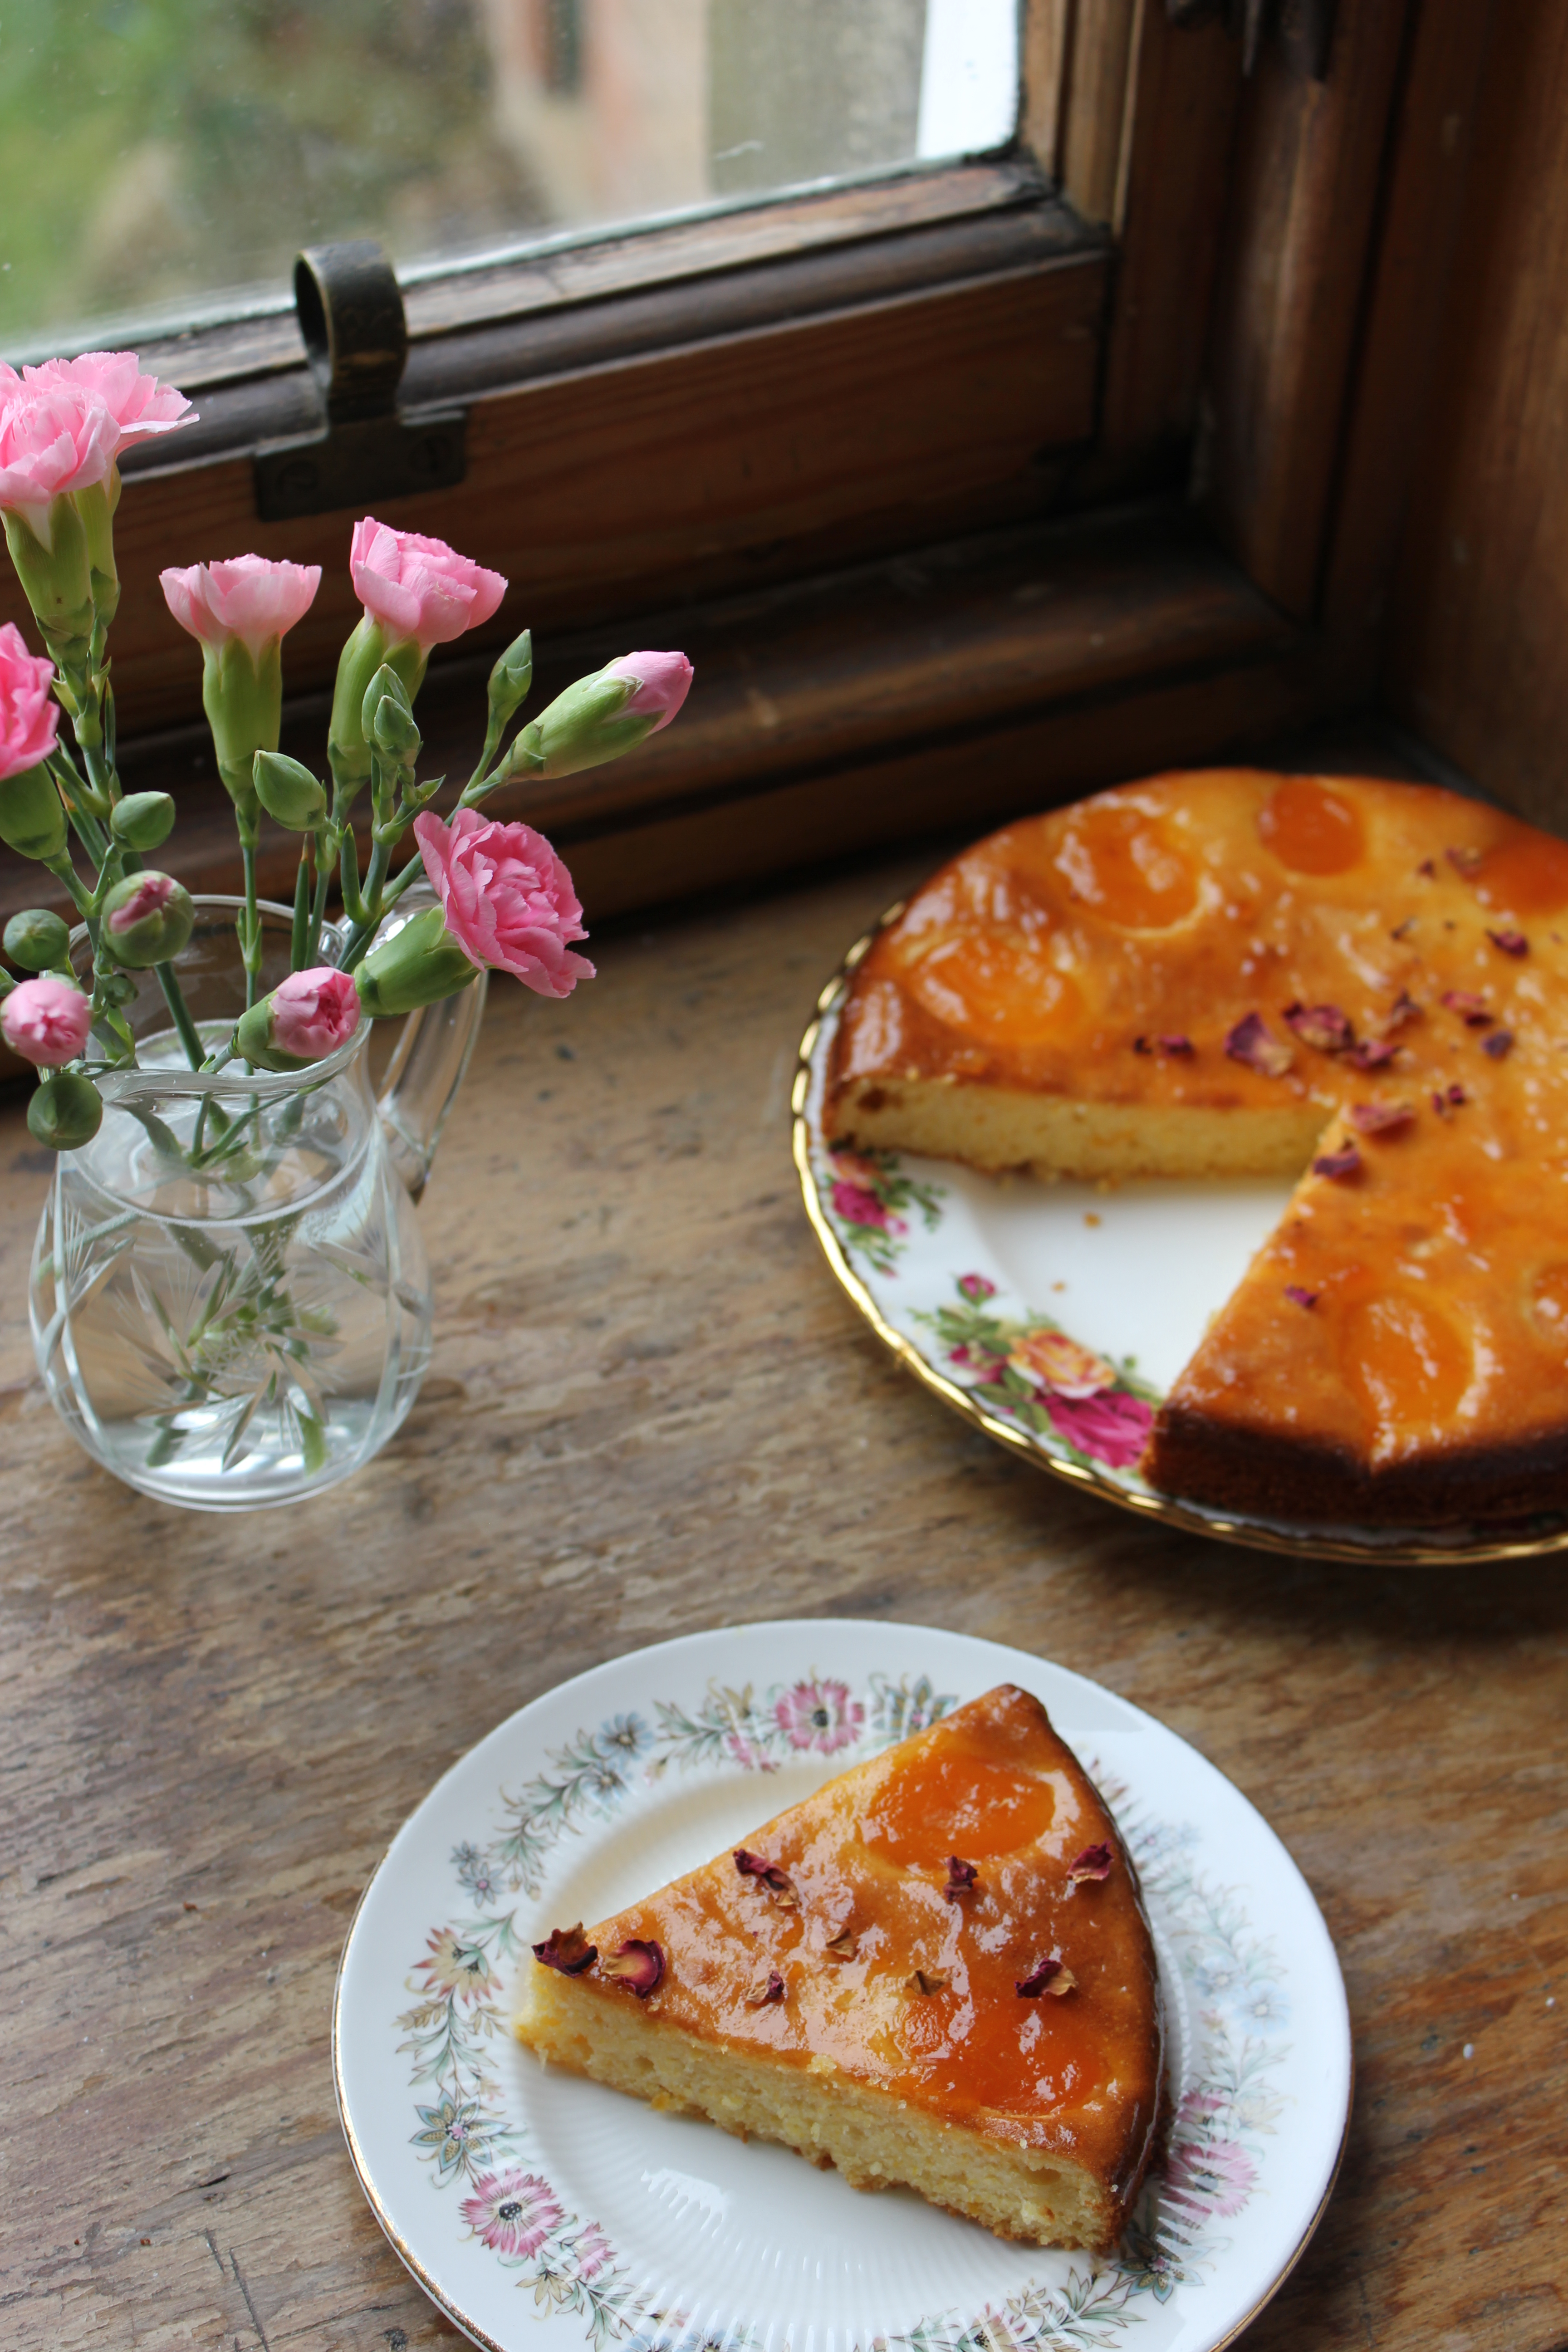 Nigella apricot almond cake with rosewater and cardamom